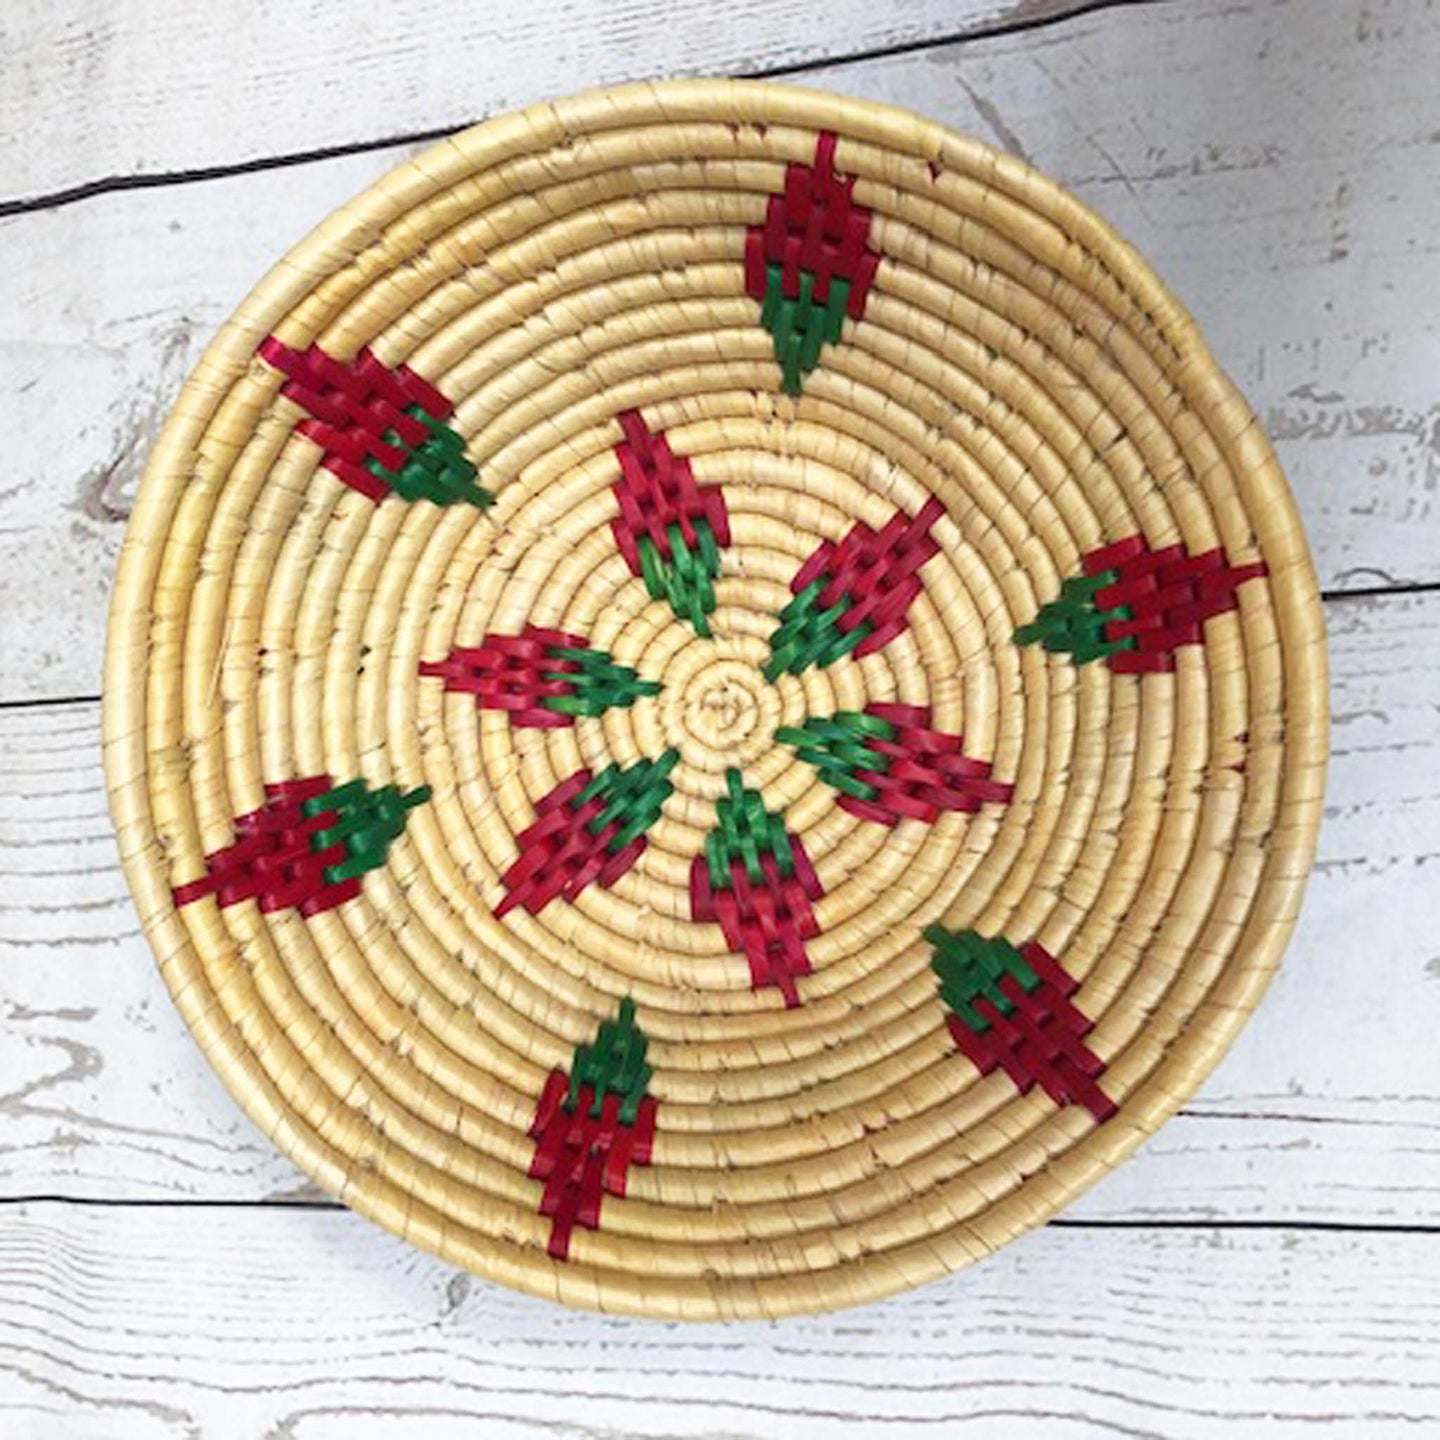 Handwoven Basket - Natural / Pink Diamond